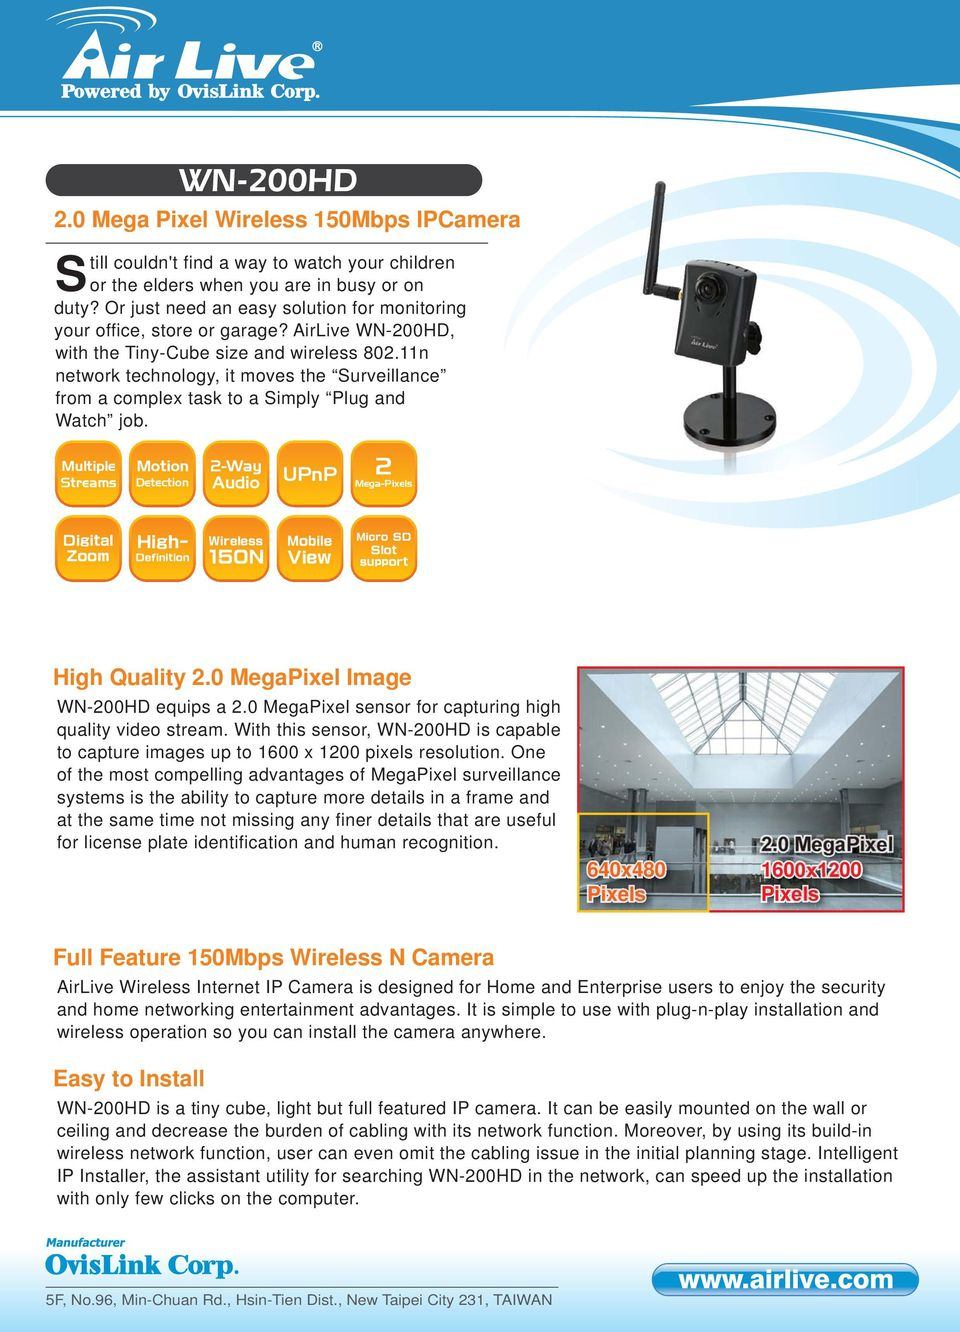 11n network technology, it moves the Surveillance from a complex task to a Simply Plug and Watch job.